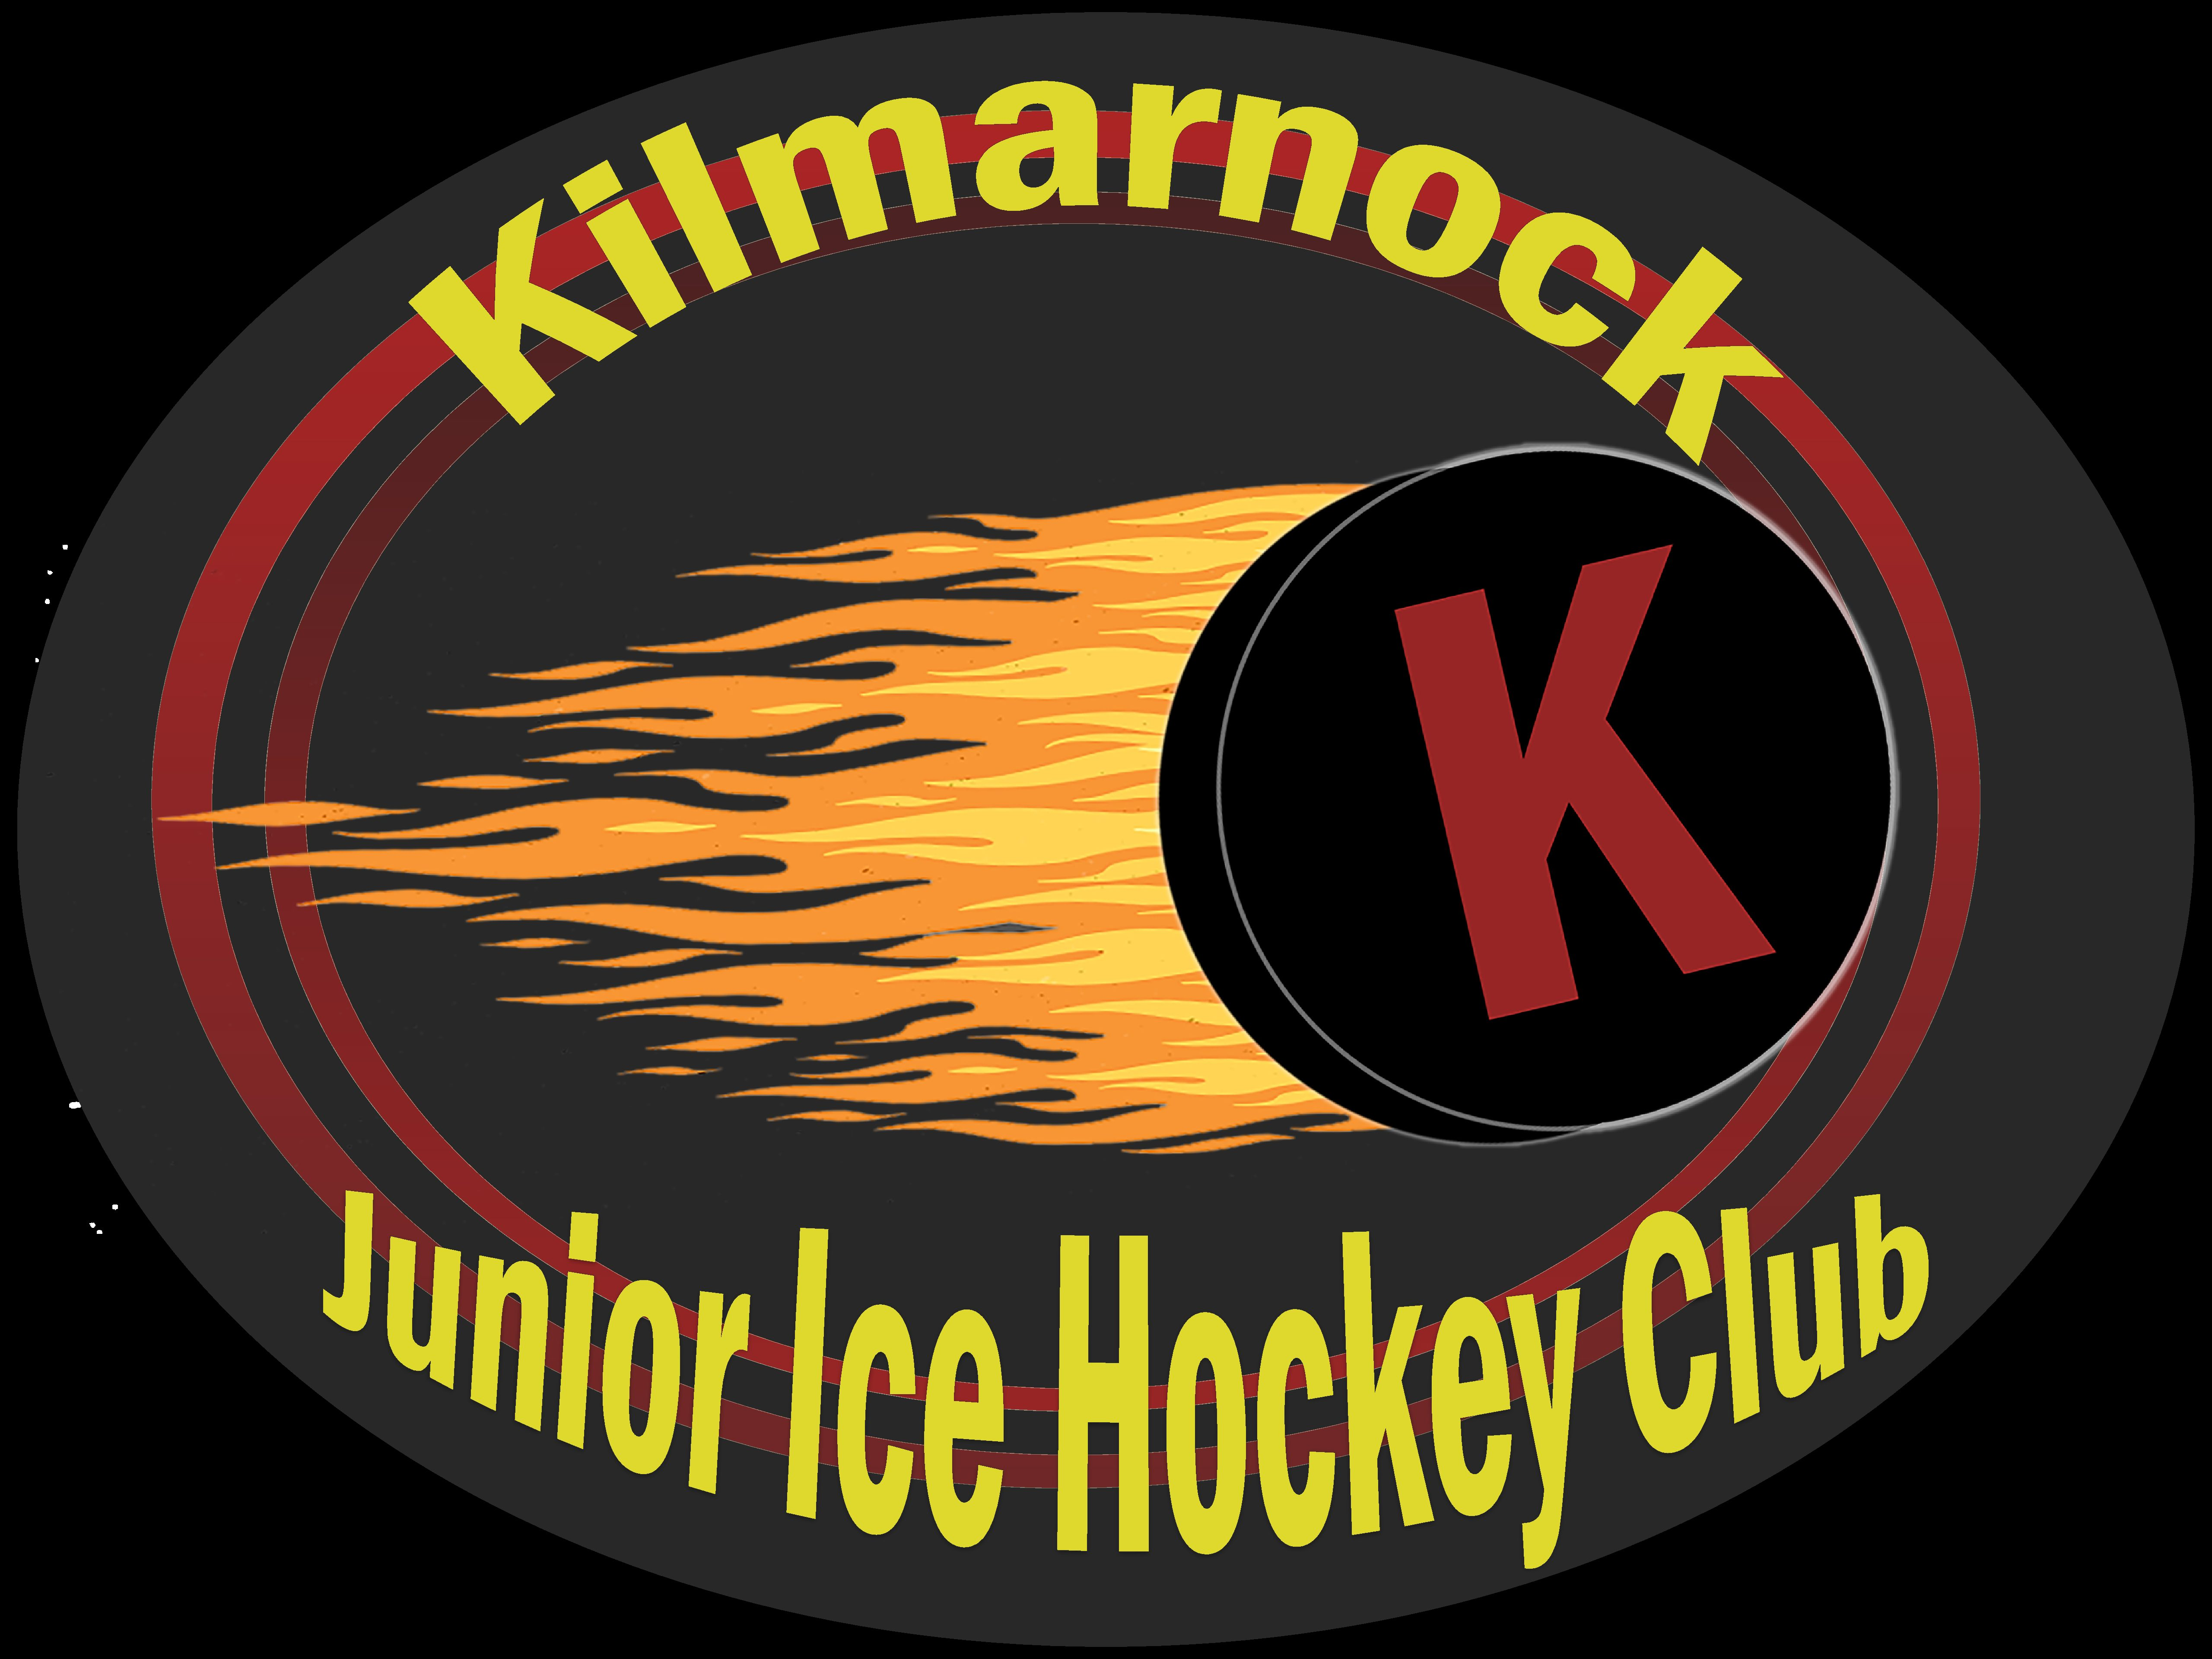 Web shop managed on behalf of Kilmarnock JIHC